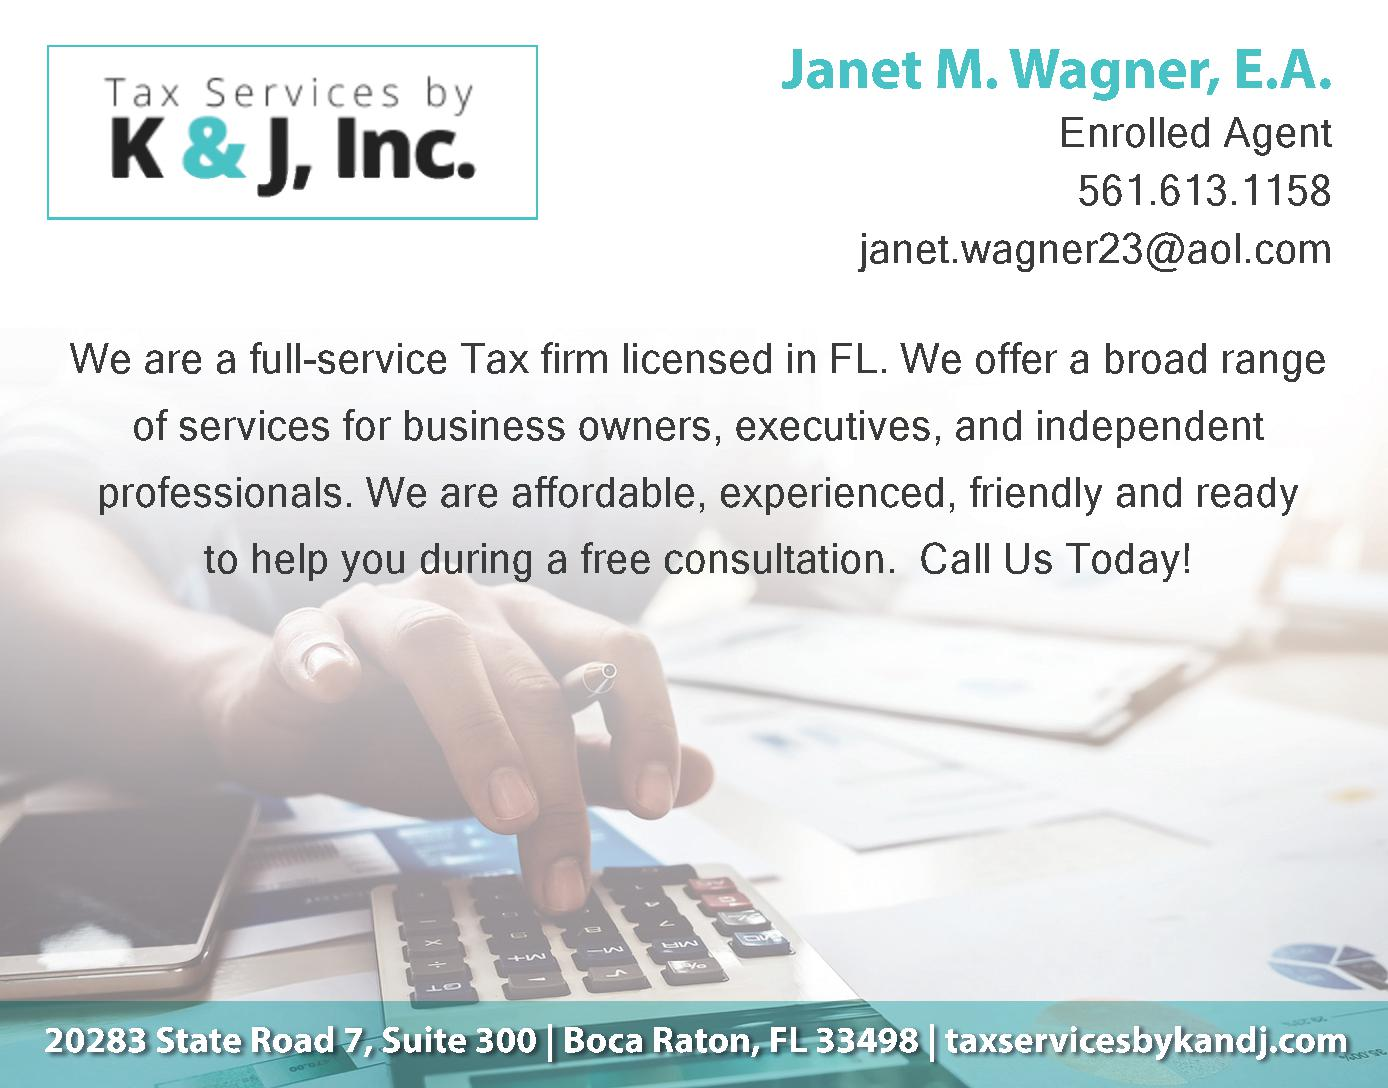 Tax Services by K & J, Inc